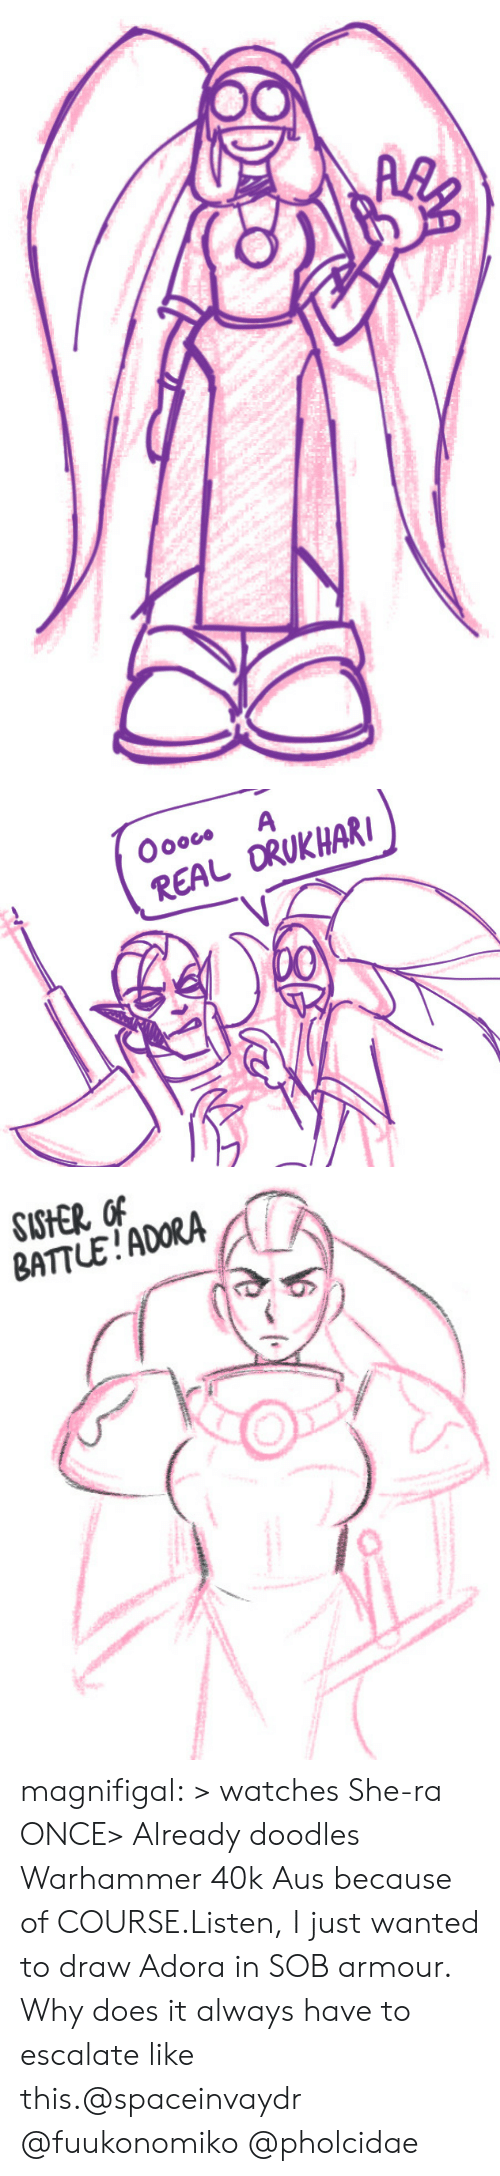 Tumblr, Blog, and Watches: Oooco  A  REAL ORUKHAR  00   SISHER OF  BATTLE!ADORA magnifigal:  > watches She-ra ONCE> Already doodles Warhammer 40k Aus because of COURSE.Listen, I just wanted to draw Adora in SOB armour. Why does it always have to escalate like this.@spaceinvaydr @fuukonomiko @pholcidae